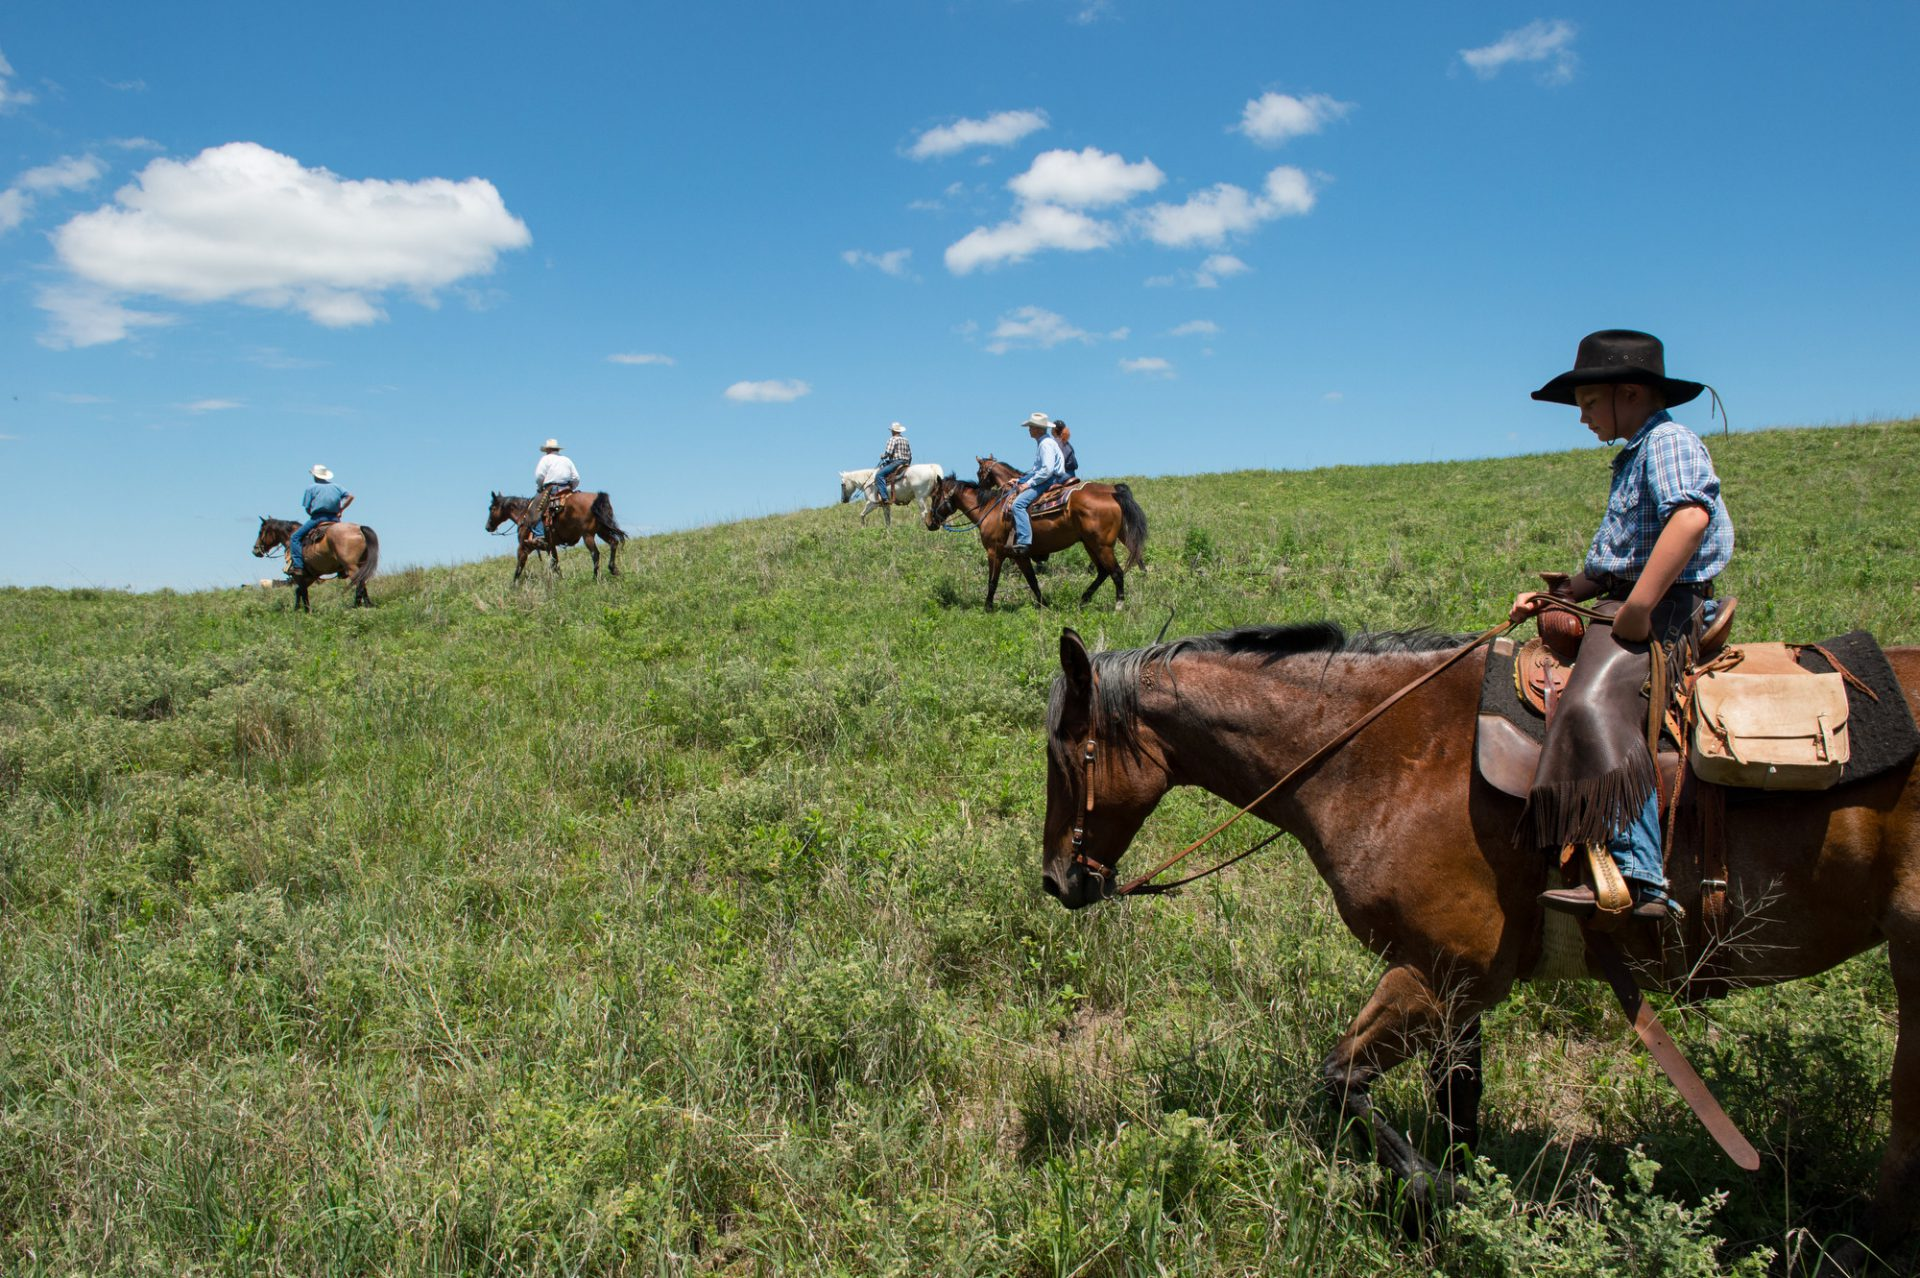 Photo: Ranchers ride horses through a field.